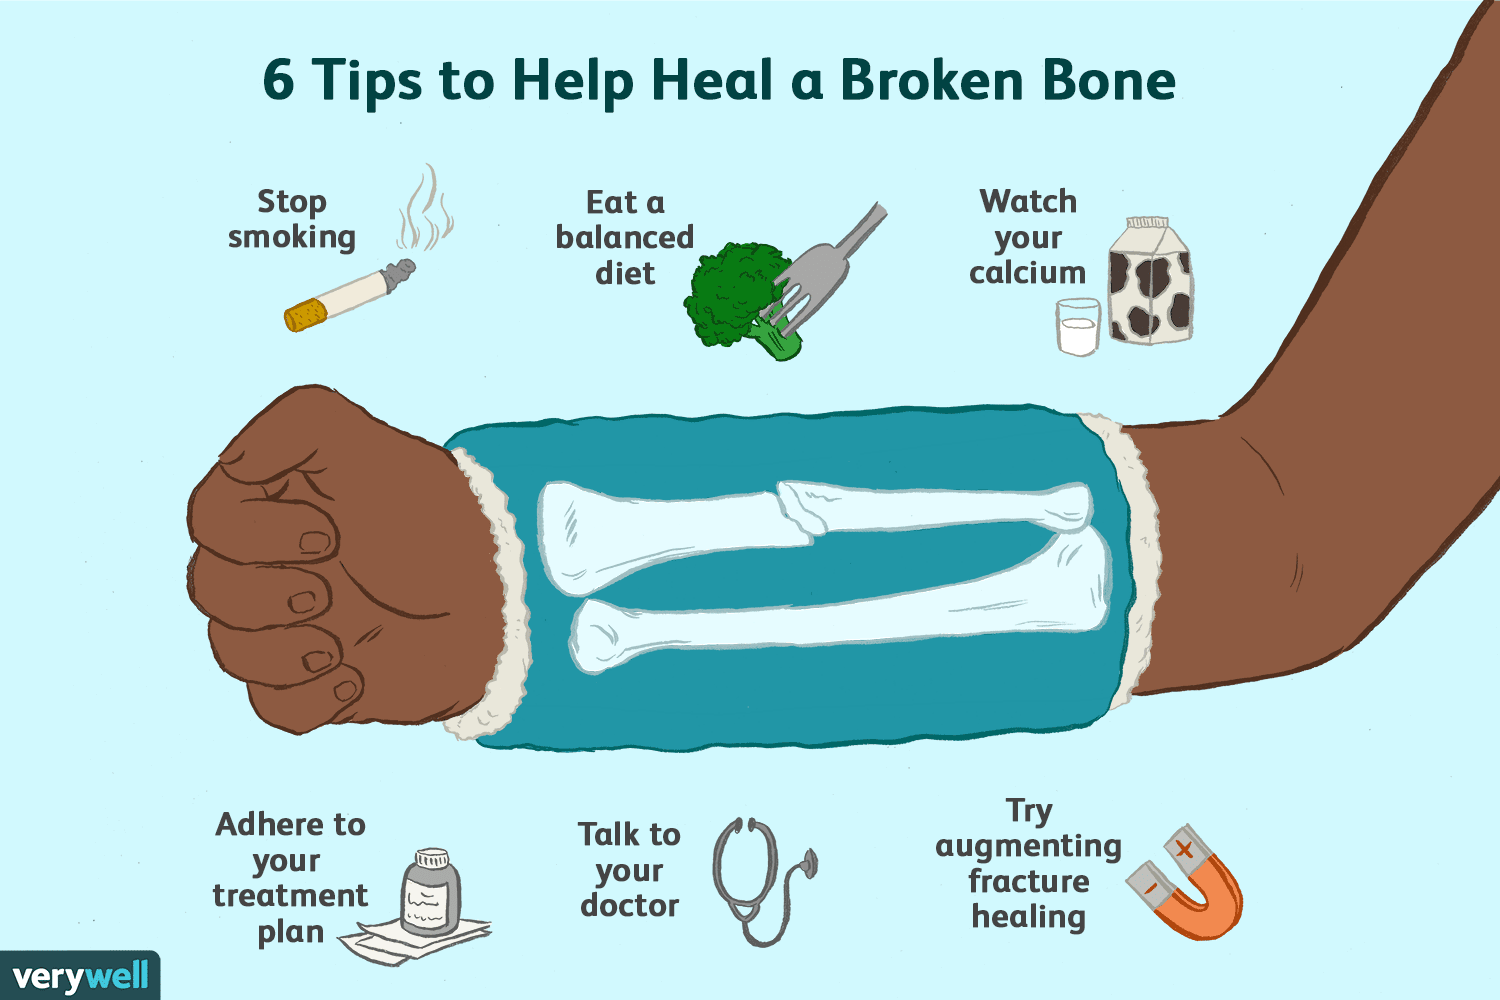 6 Ideas For Healing Broken Bones As Quickly As Possible